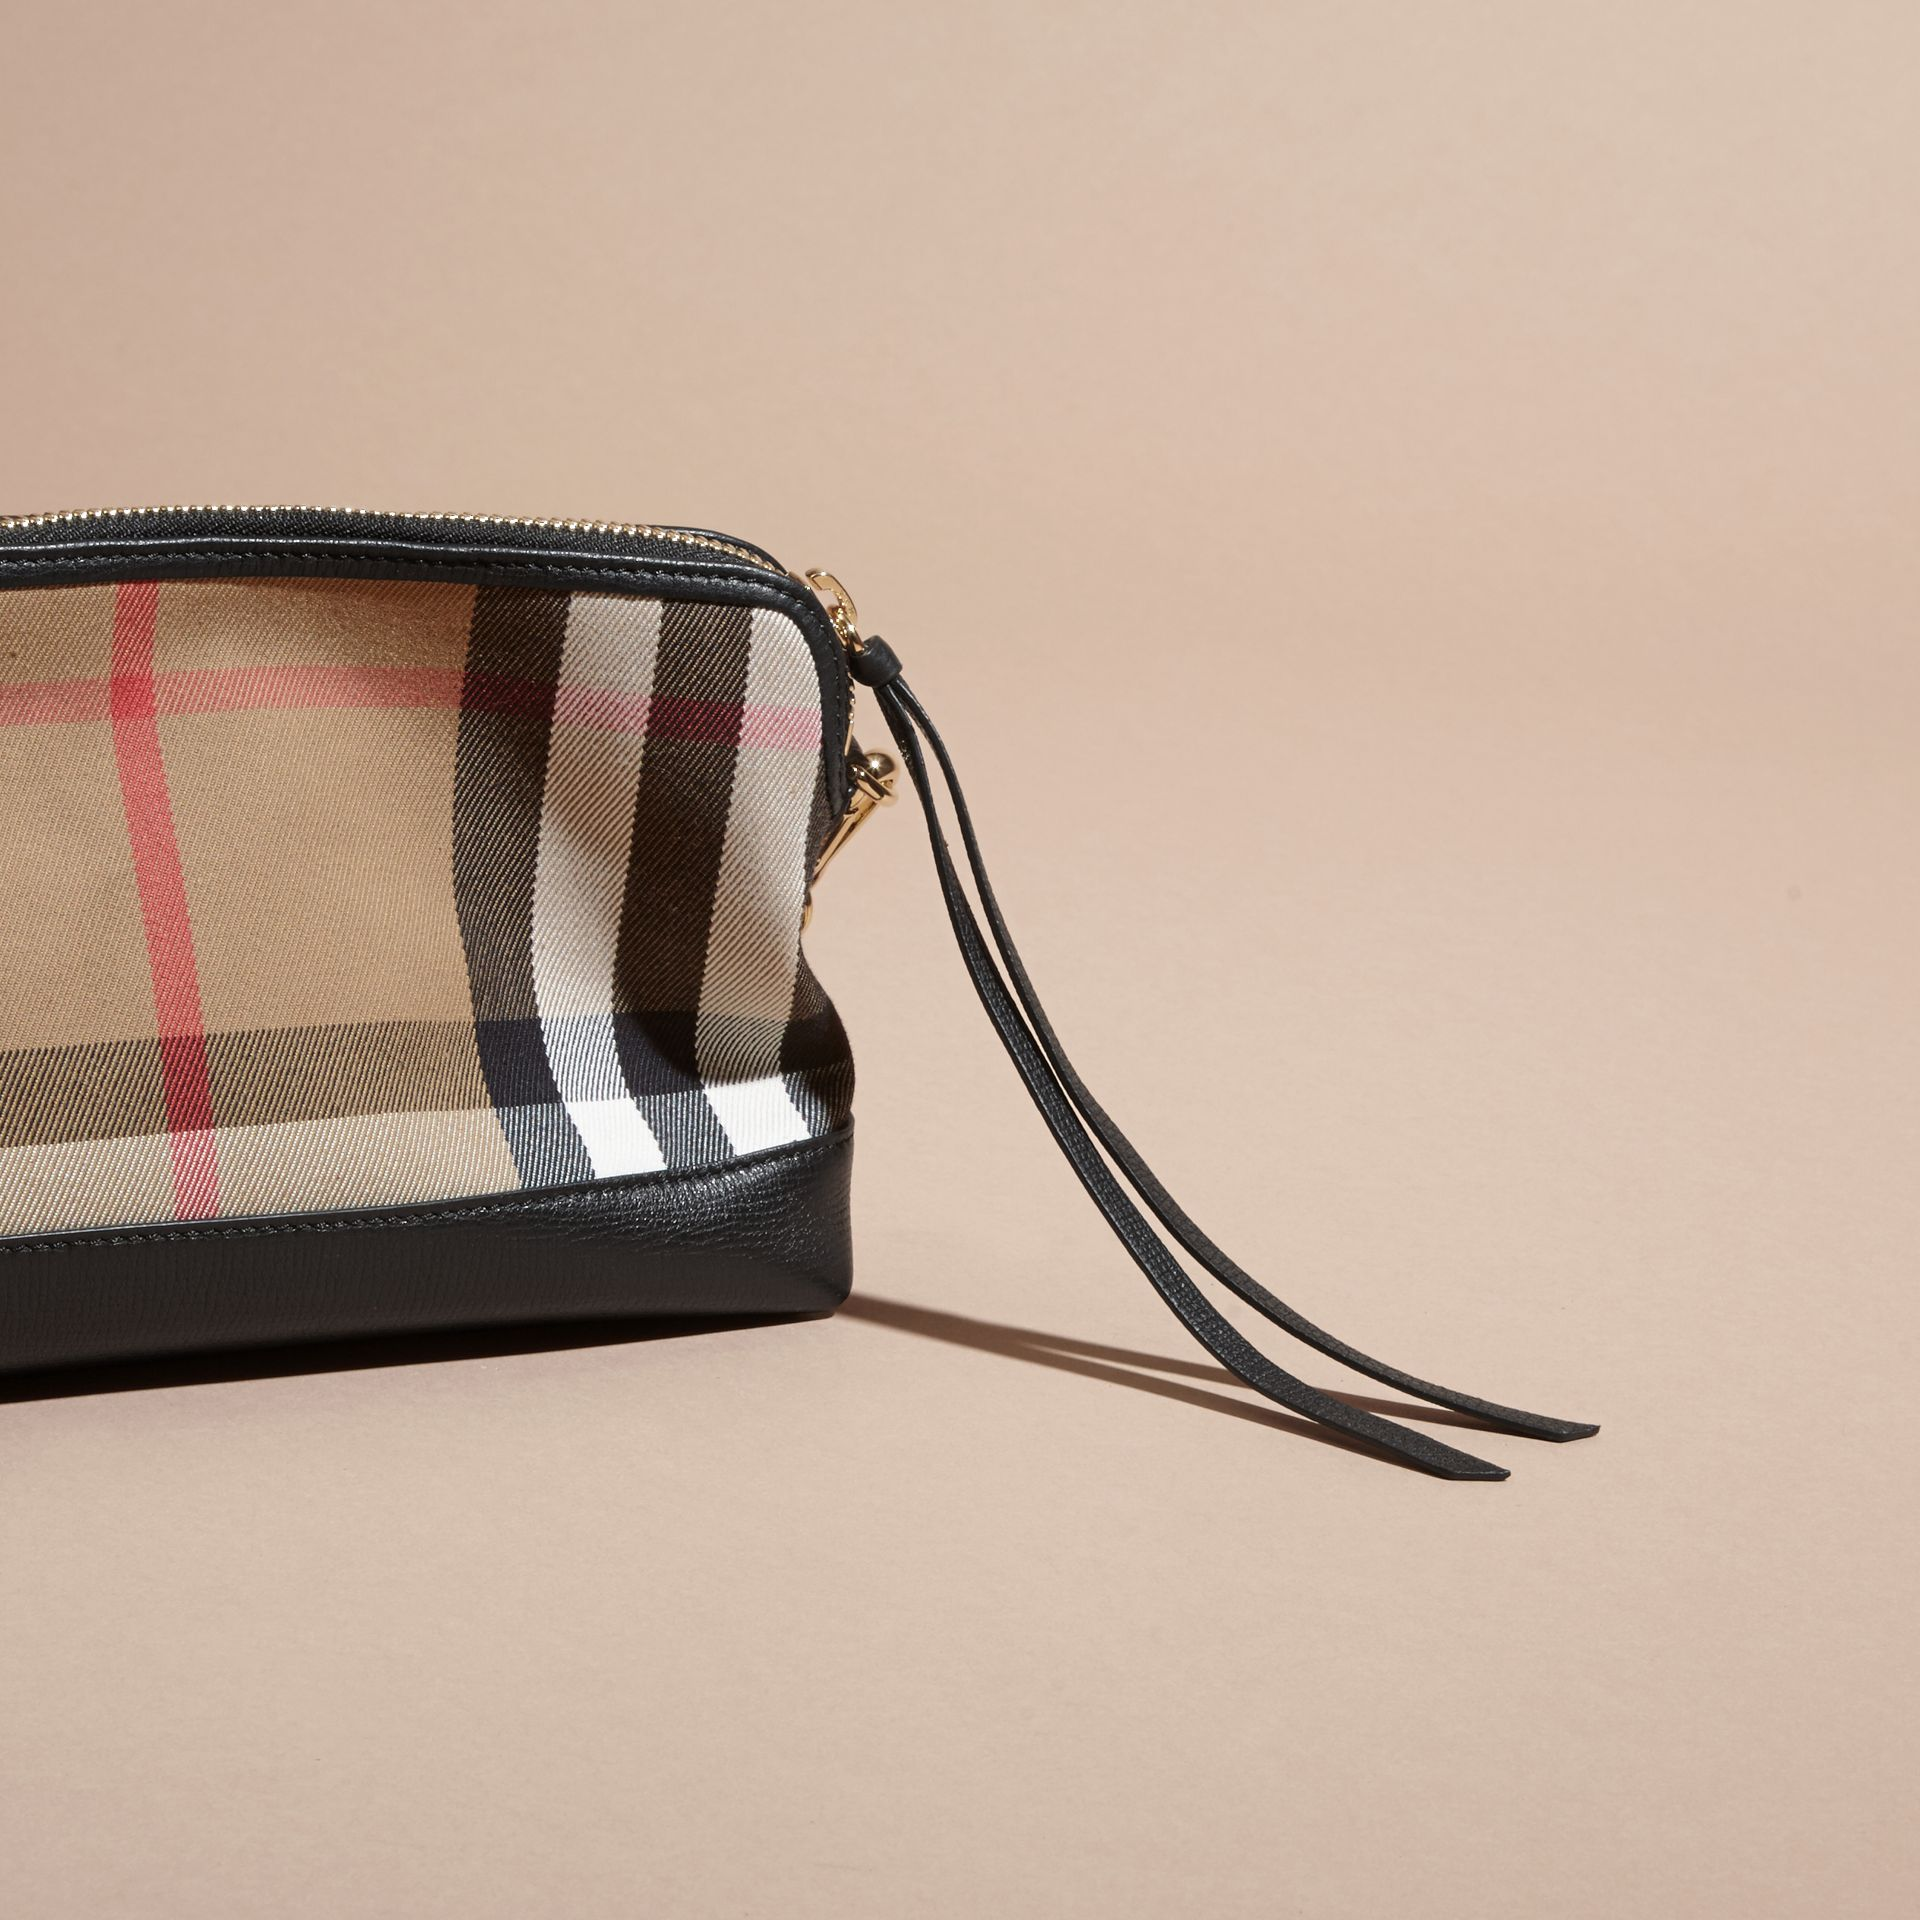 House Check and Leather Clutch Bag in Black - Women | Burberry Canada - gallery image 5